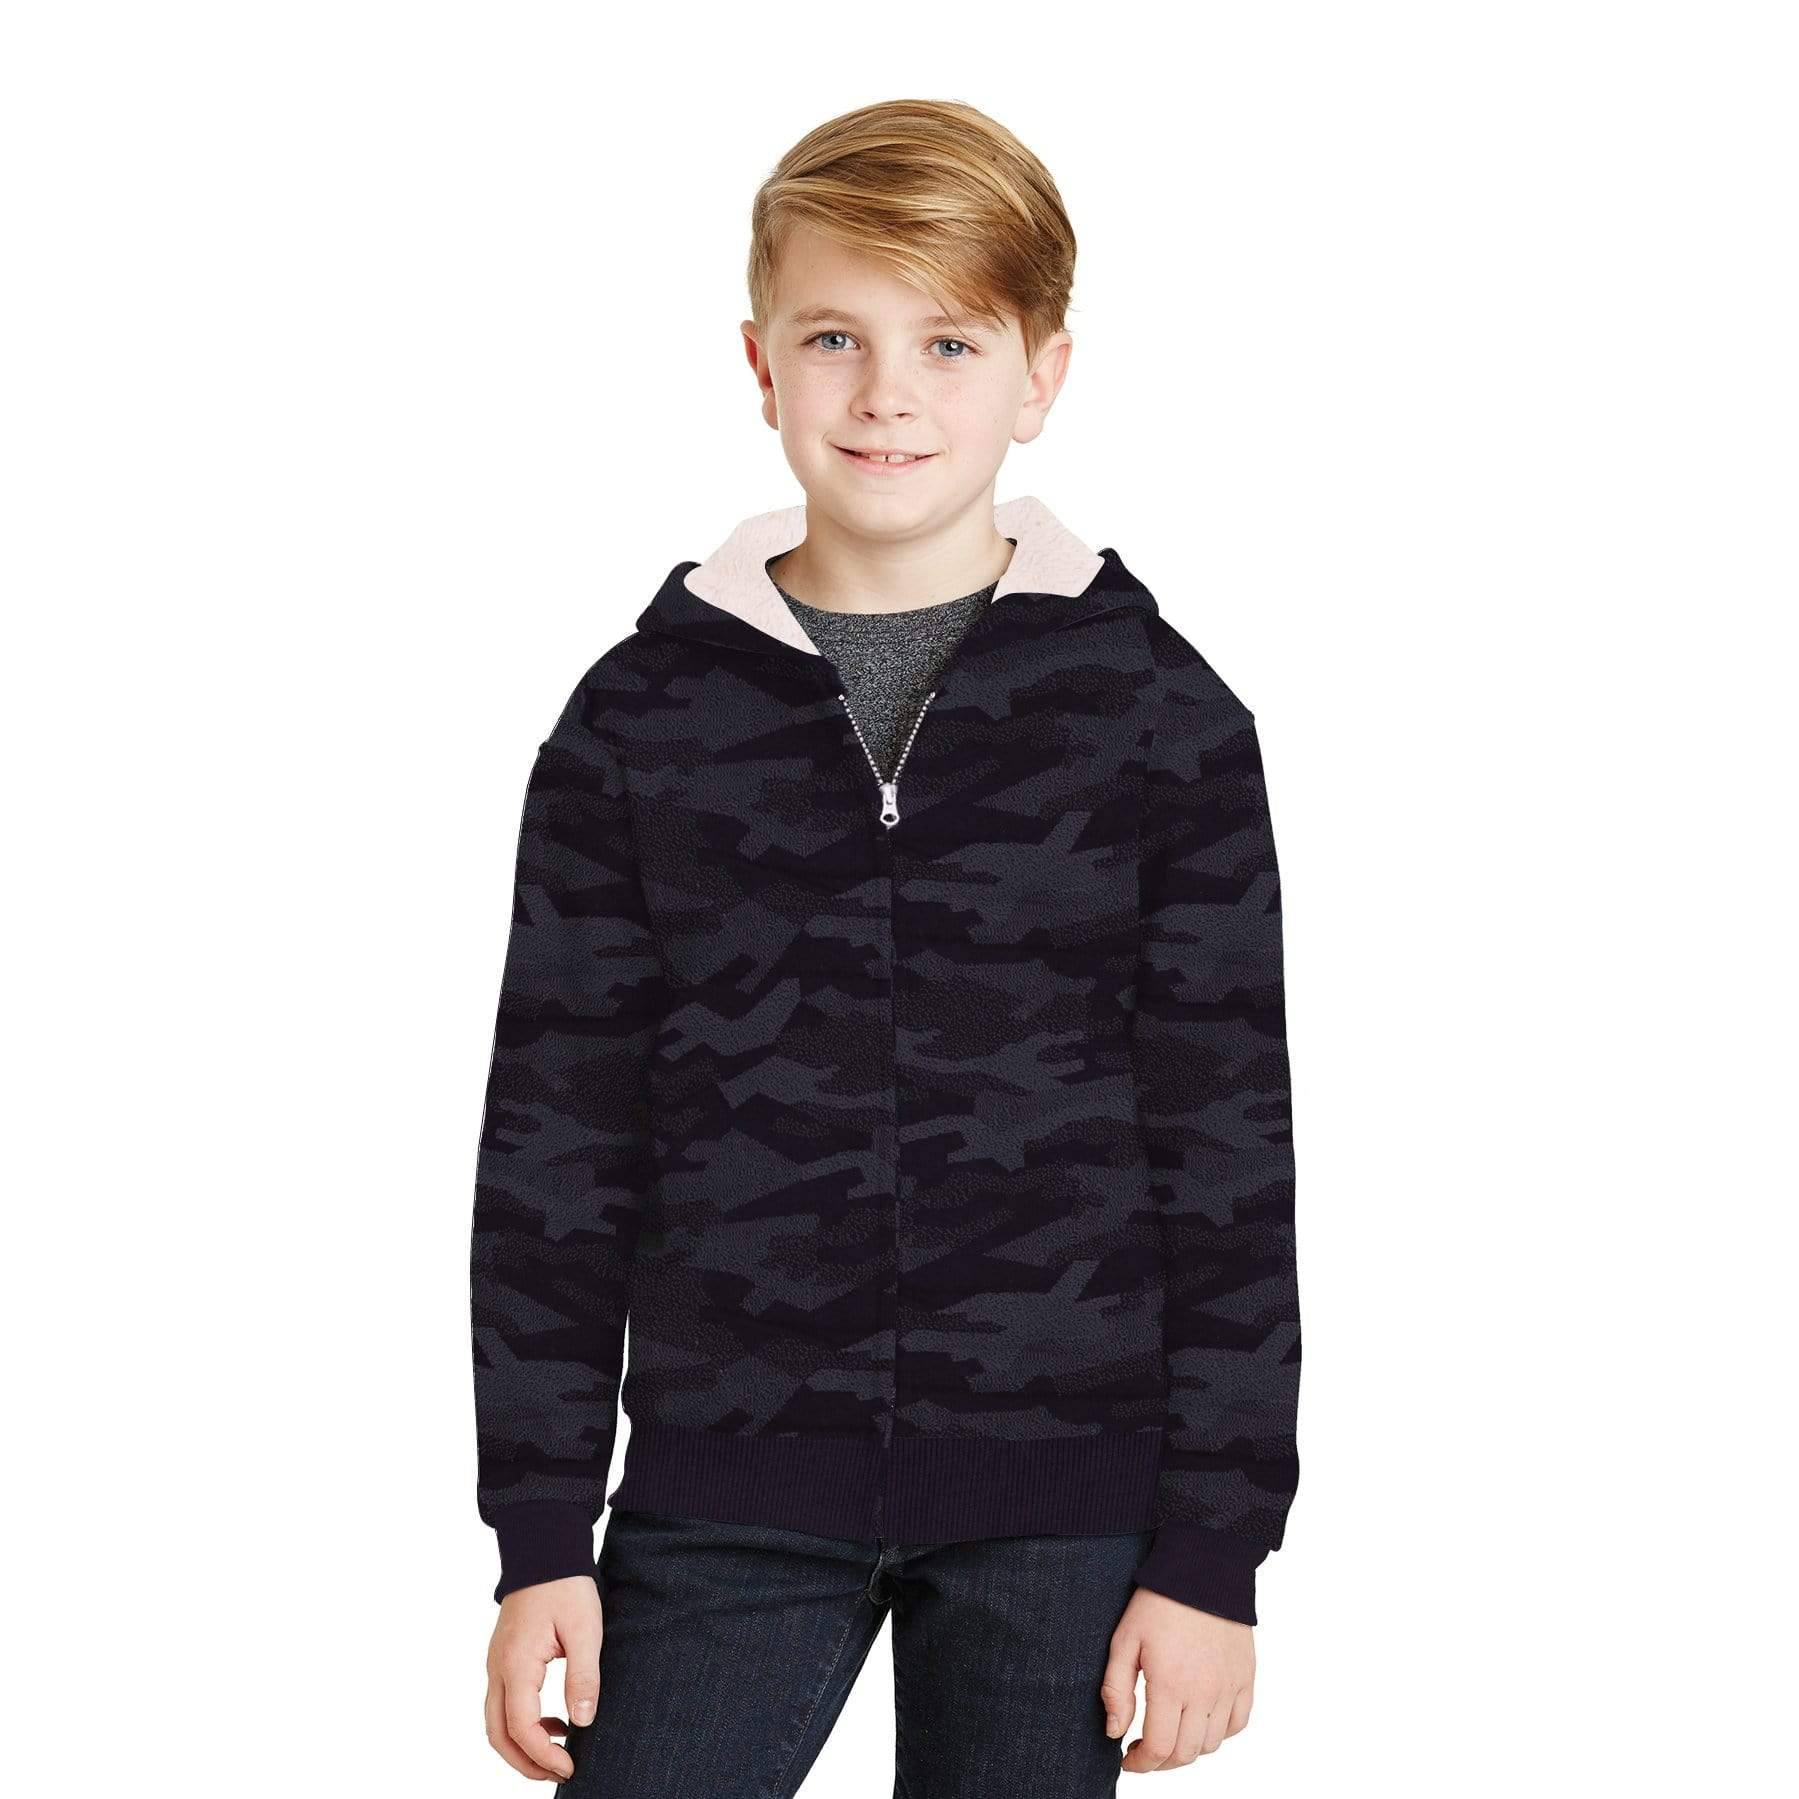 Stone Harbor Boy's Zipper Hoodie Black / 2-3 Years Boy's Stone Harbor Camo FALL SHADE Fur Lined Zipper HOODIE